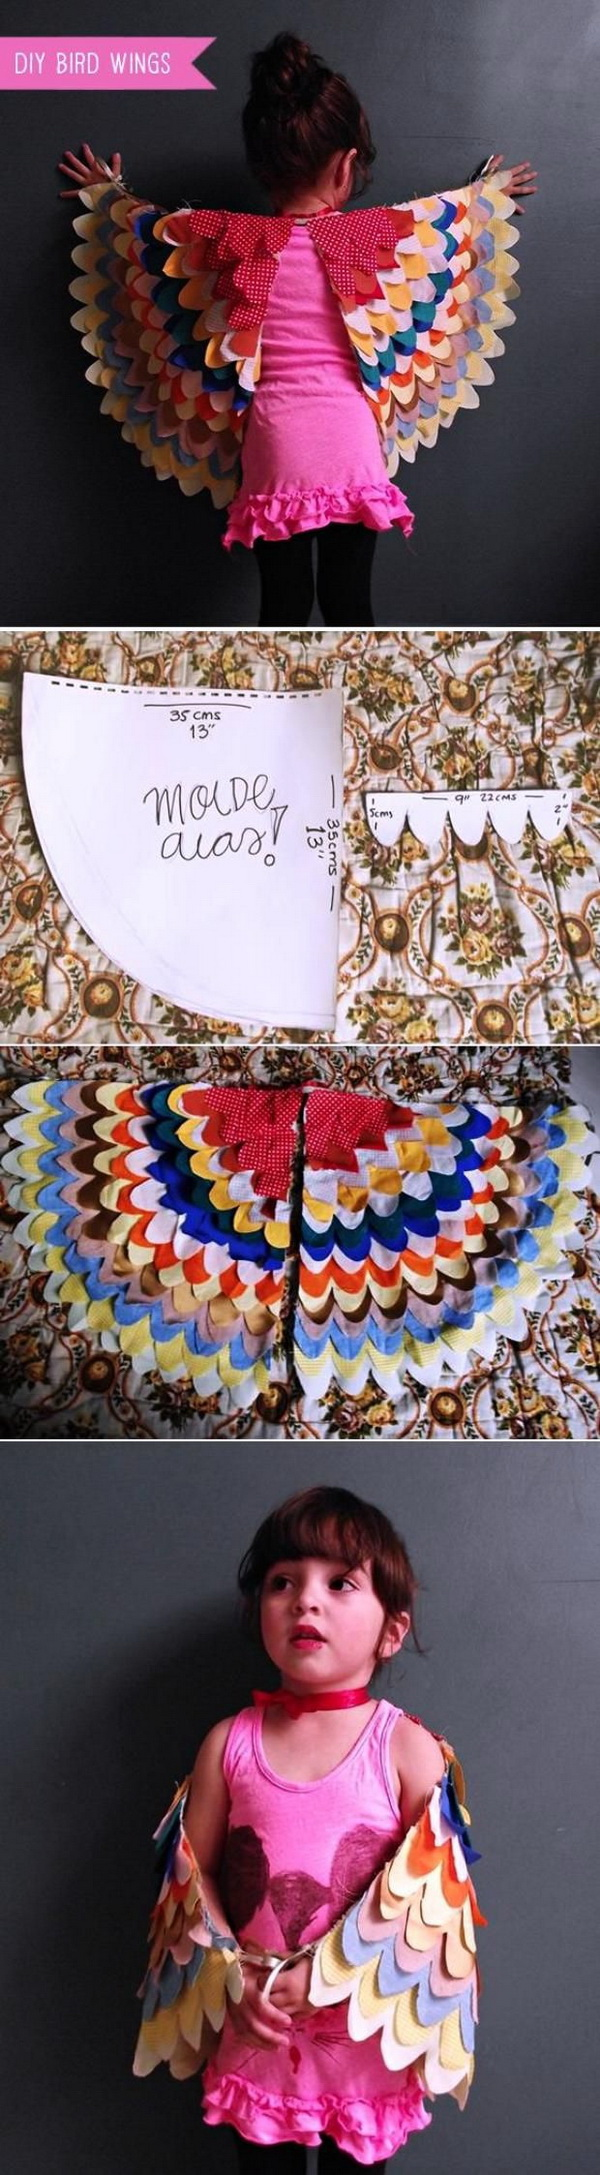 DIY Bird Wings Costume.